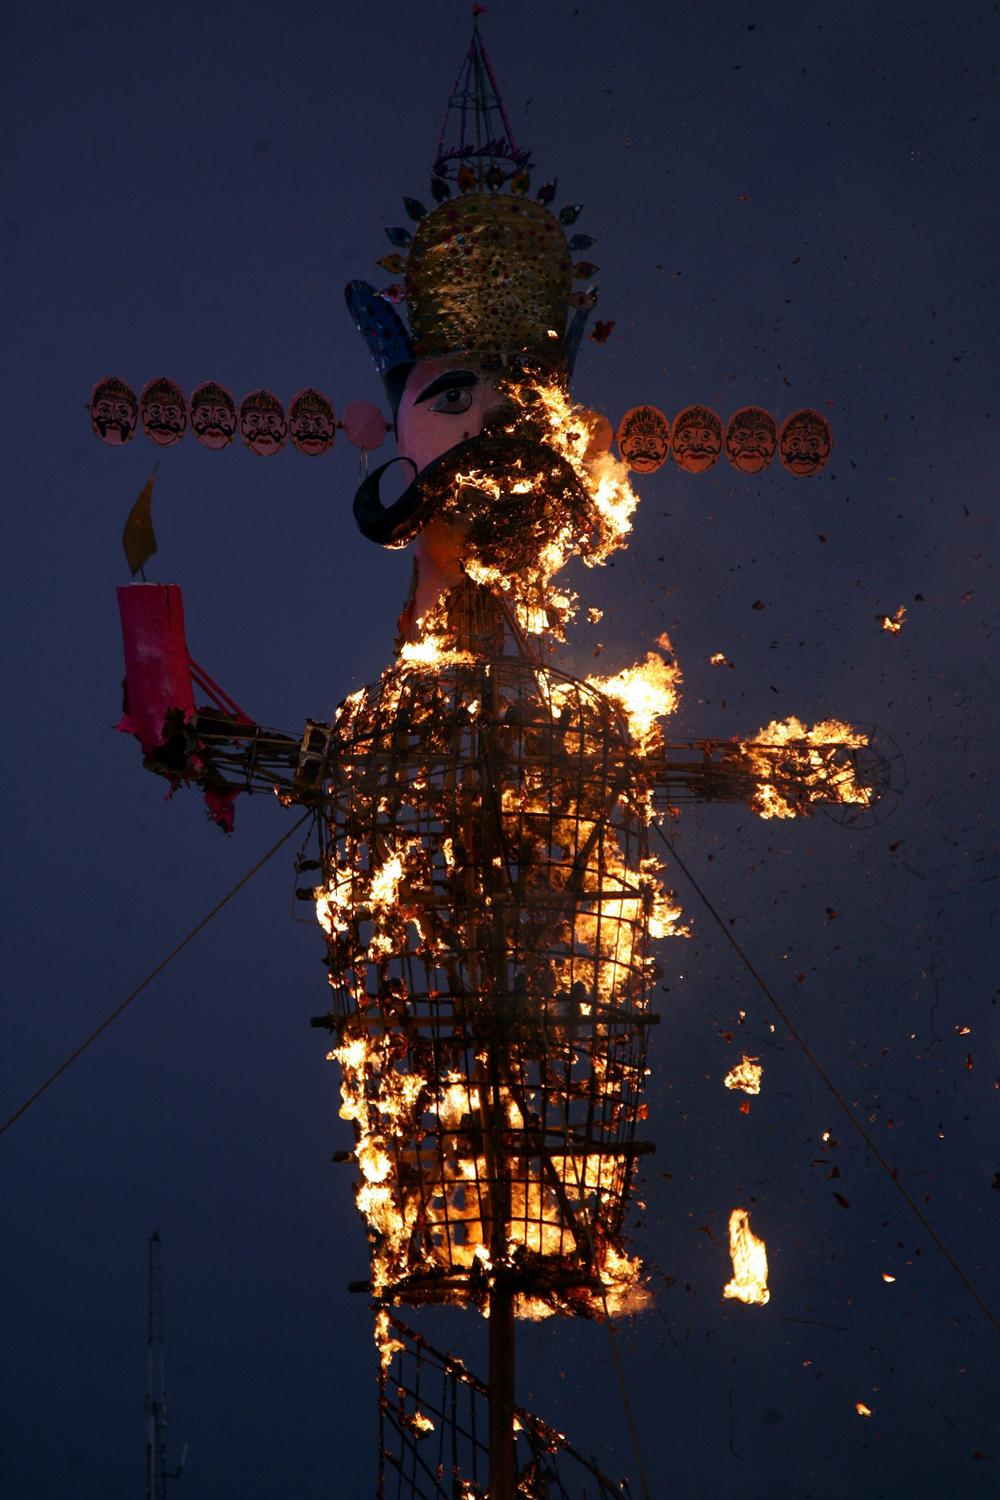 <p>An effigy of demon king Ravana is set ablaze during Dussehra festival celebrations in Jammu. Dussehra, which is celebrated at the end of the Navratri (nine nights) festival, symbolises the victory of good over evil in Hindu mythology.</p>